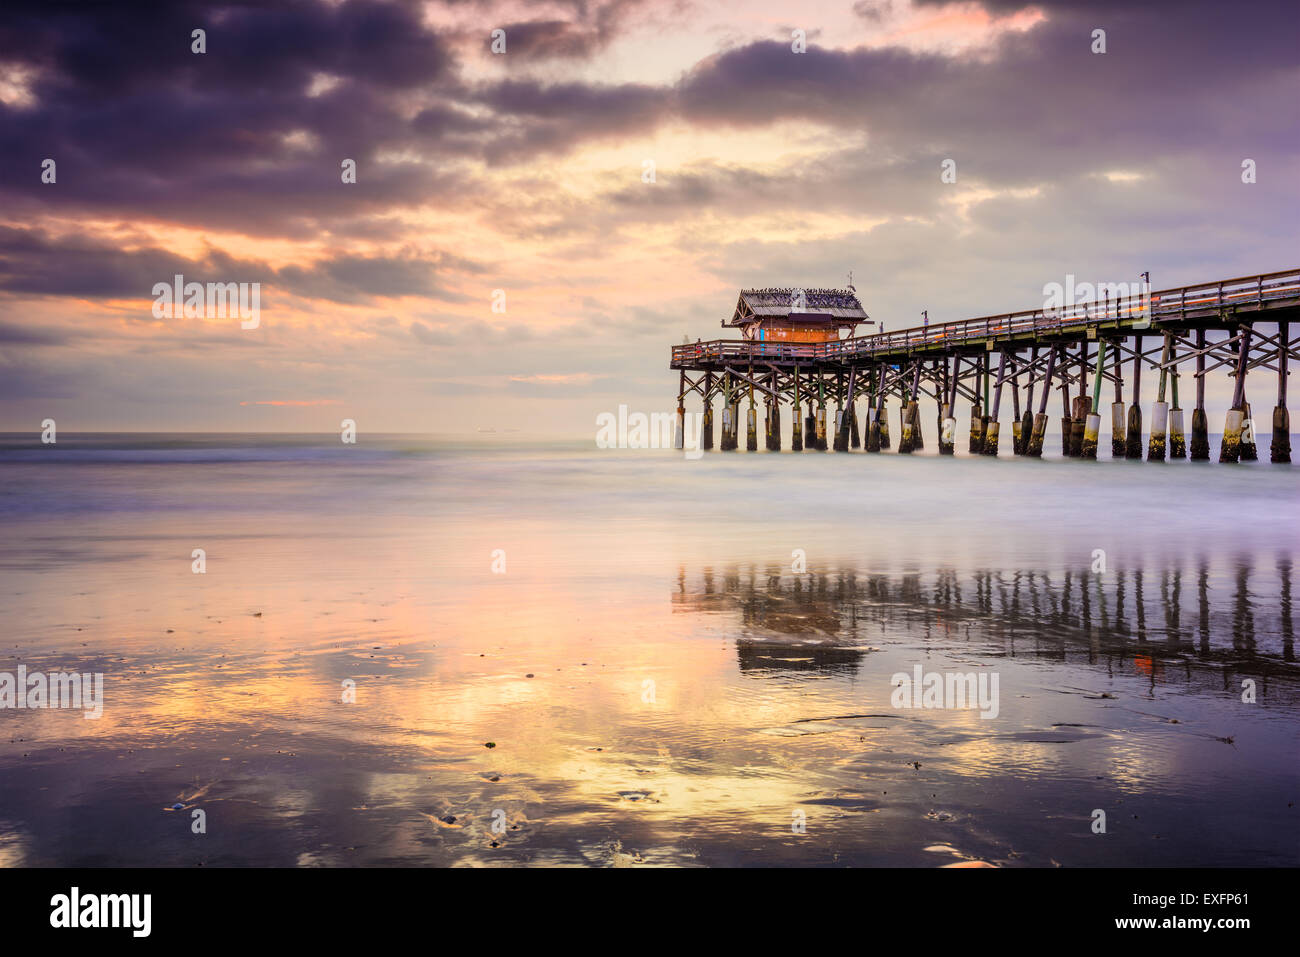 Cocoa Beach, Florida, USA am Pier. Stockbild